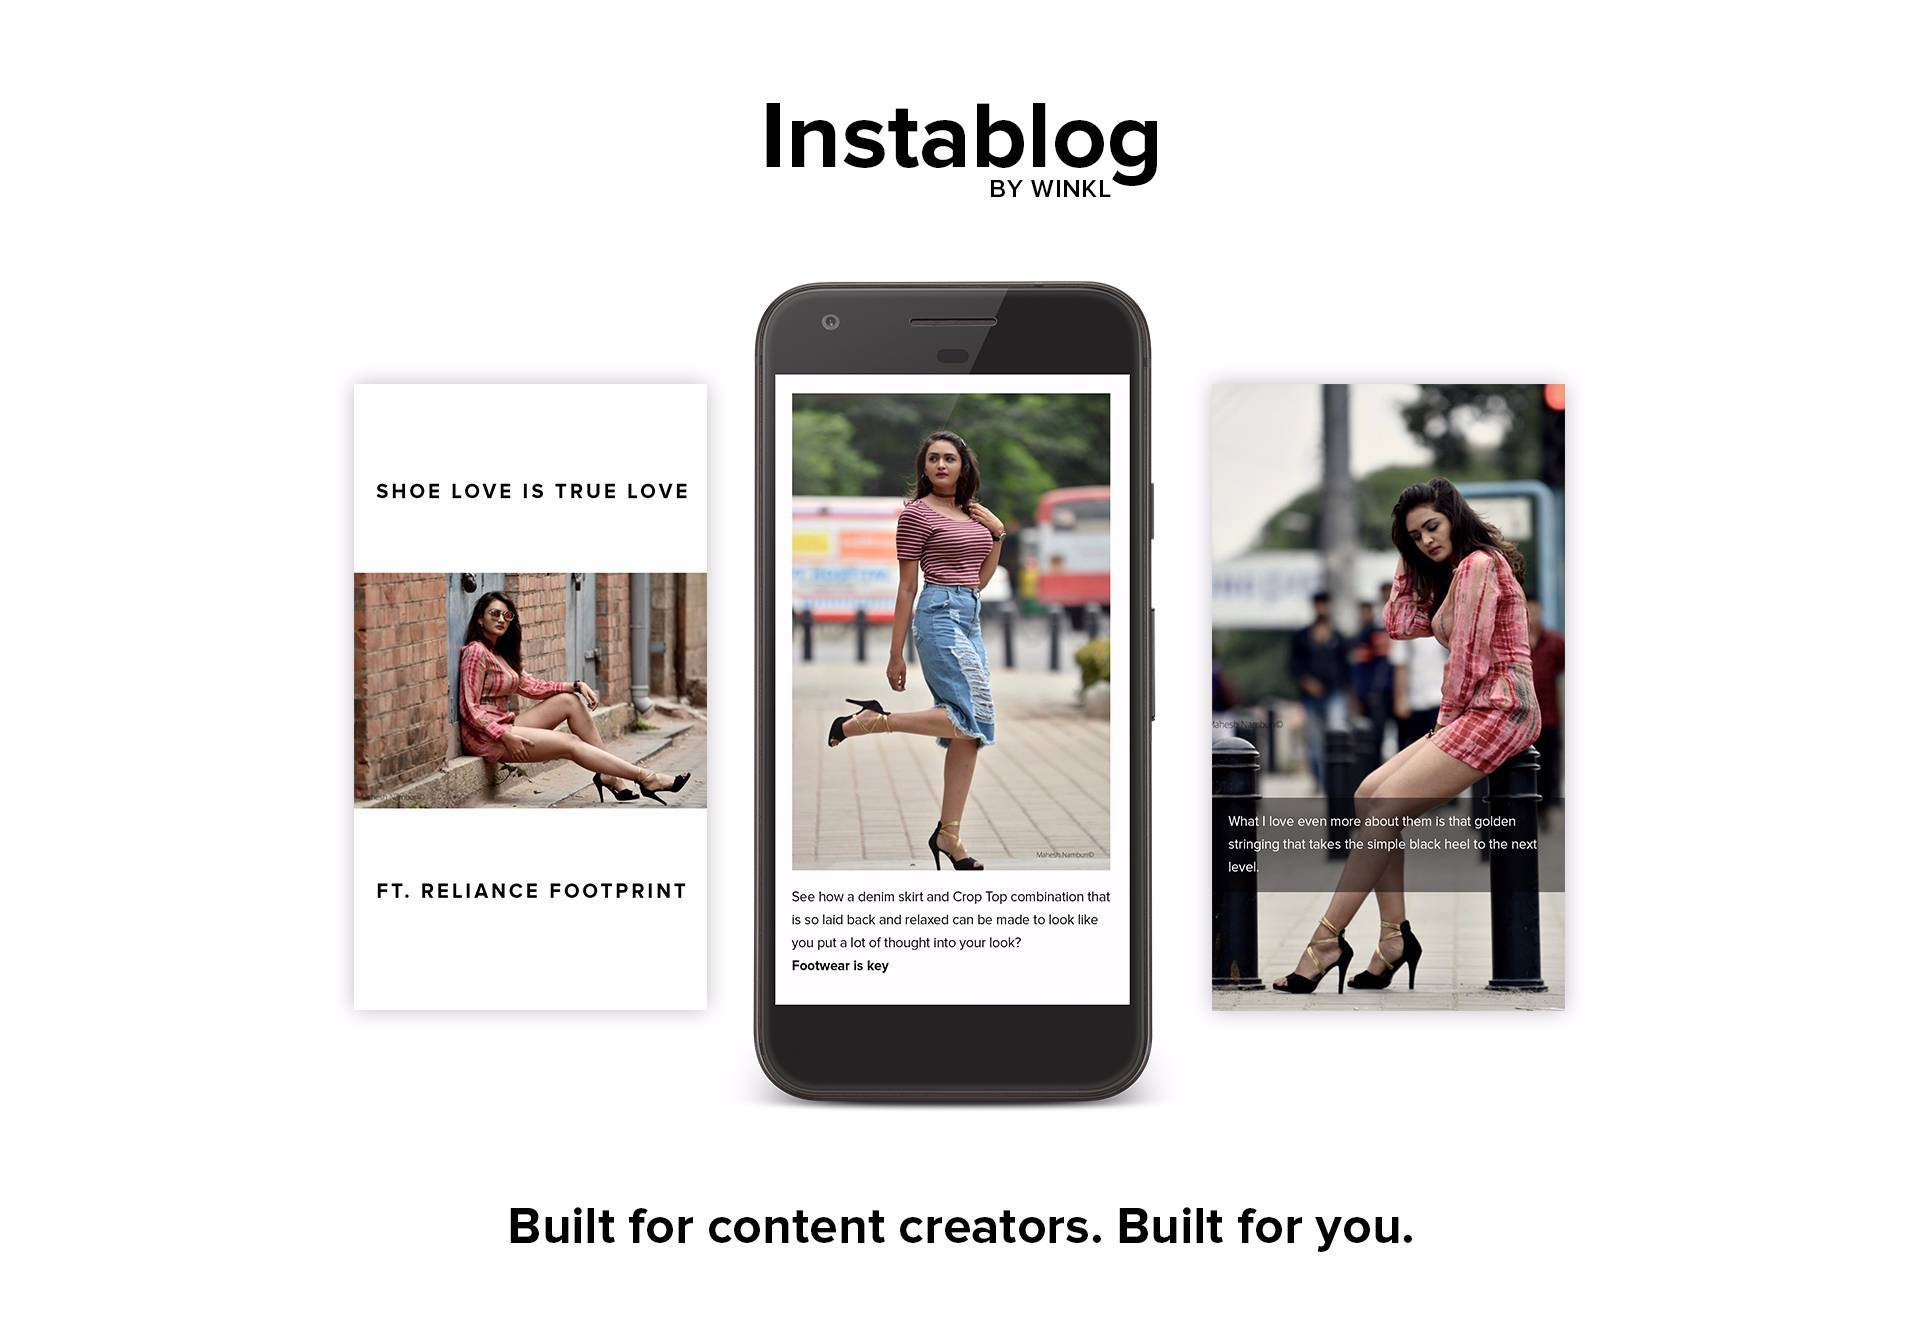 Instablog by Winkl: The future of blogging image